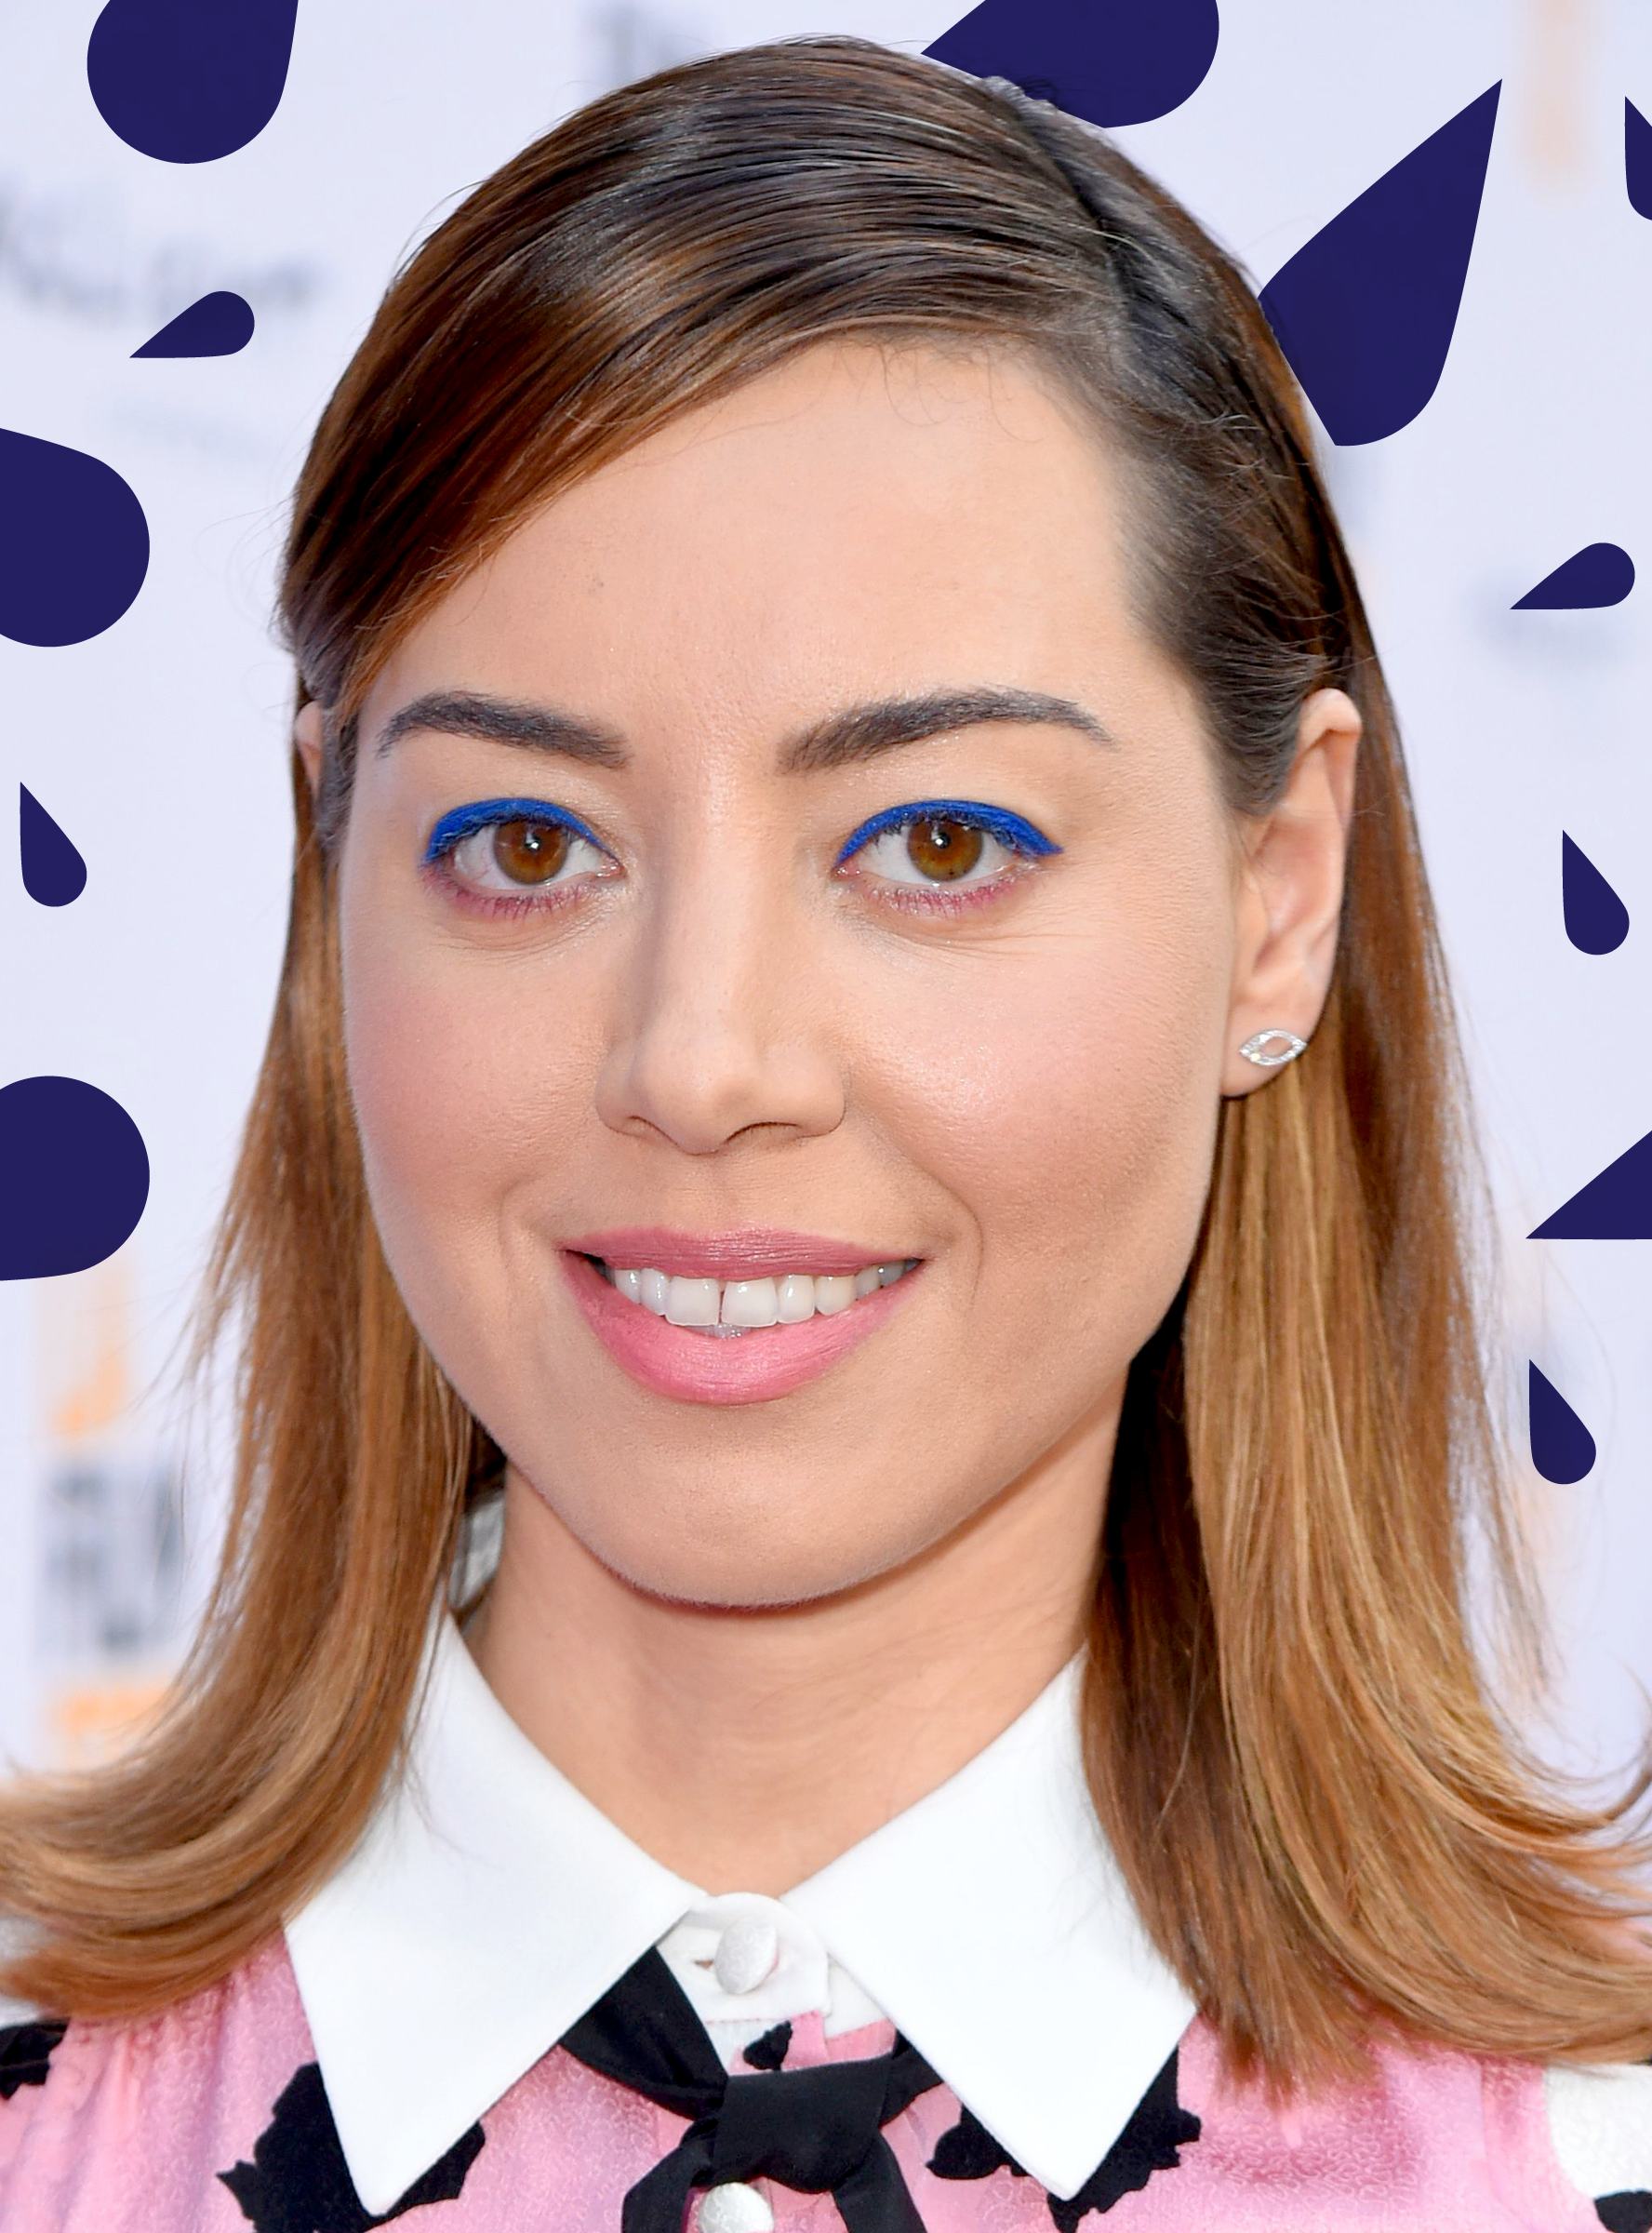 Aubrey Plaza Has Your Official Guide To Social Media Etiquette